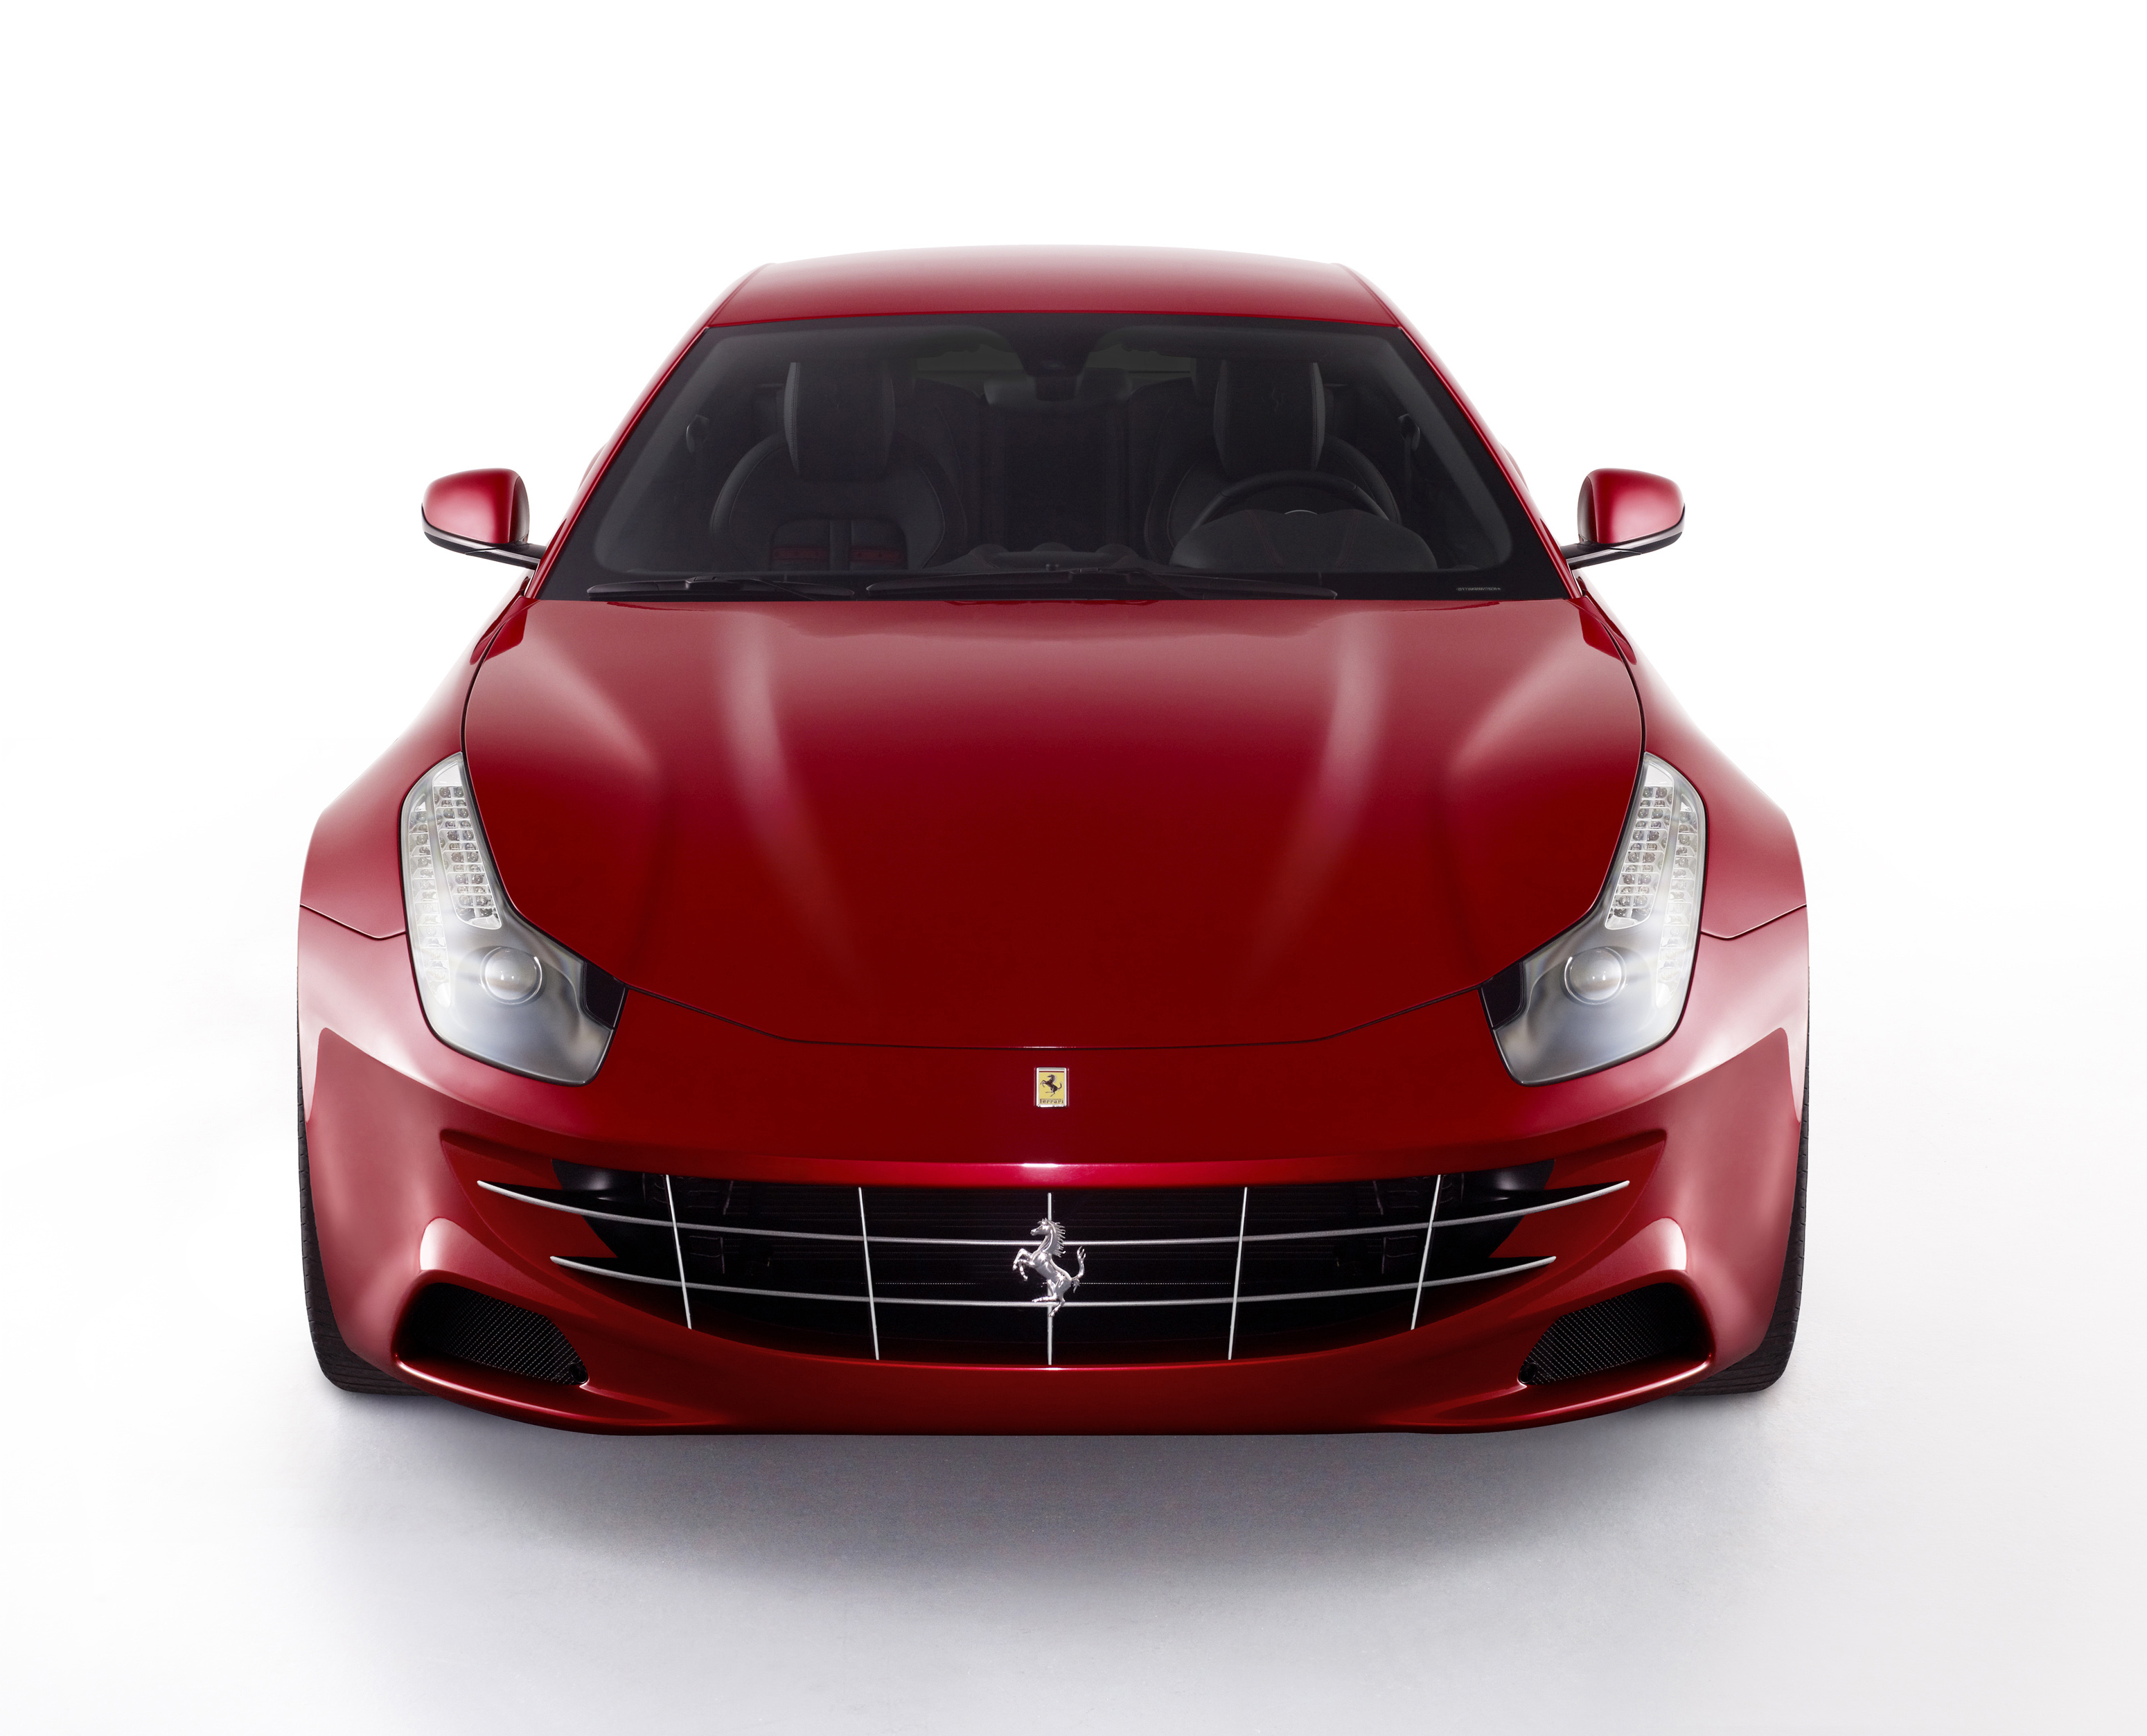 Ferrari FF photo 11